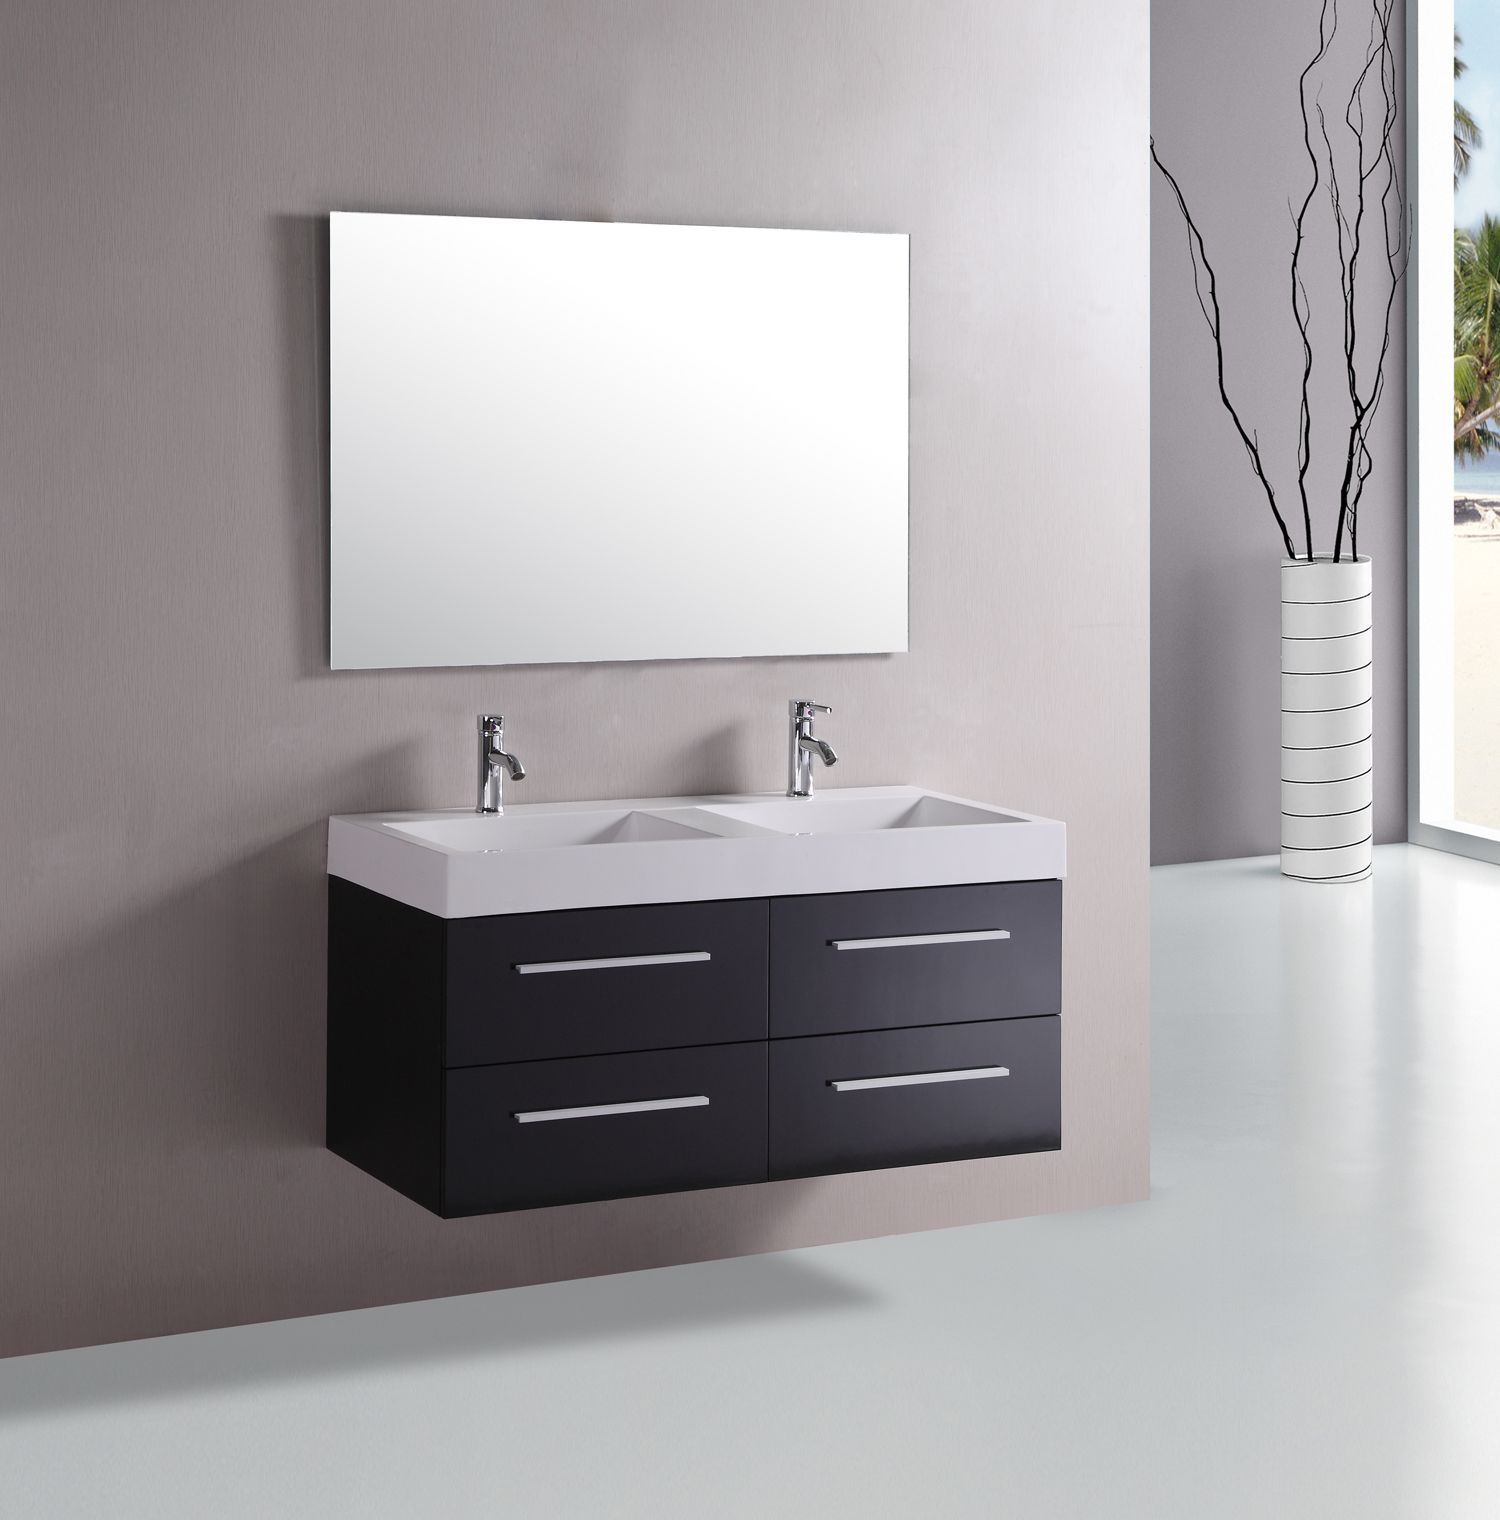 Image of: 48 Double Vanity Floating